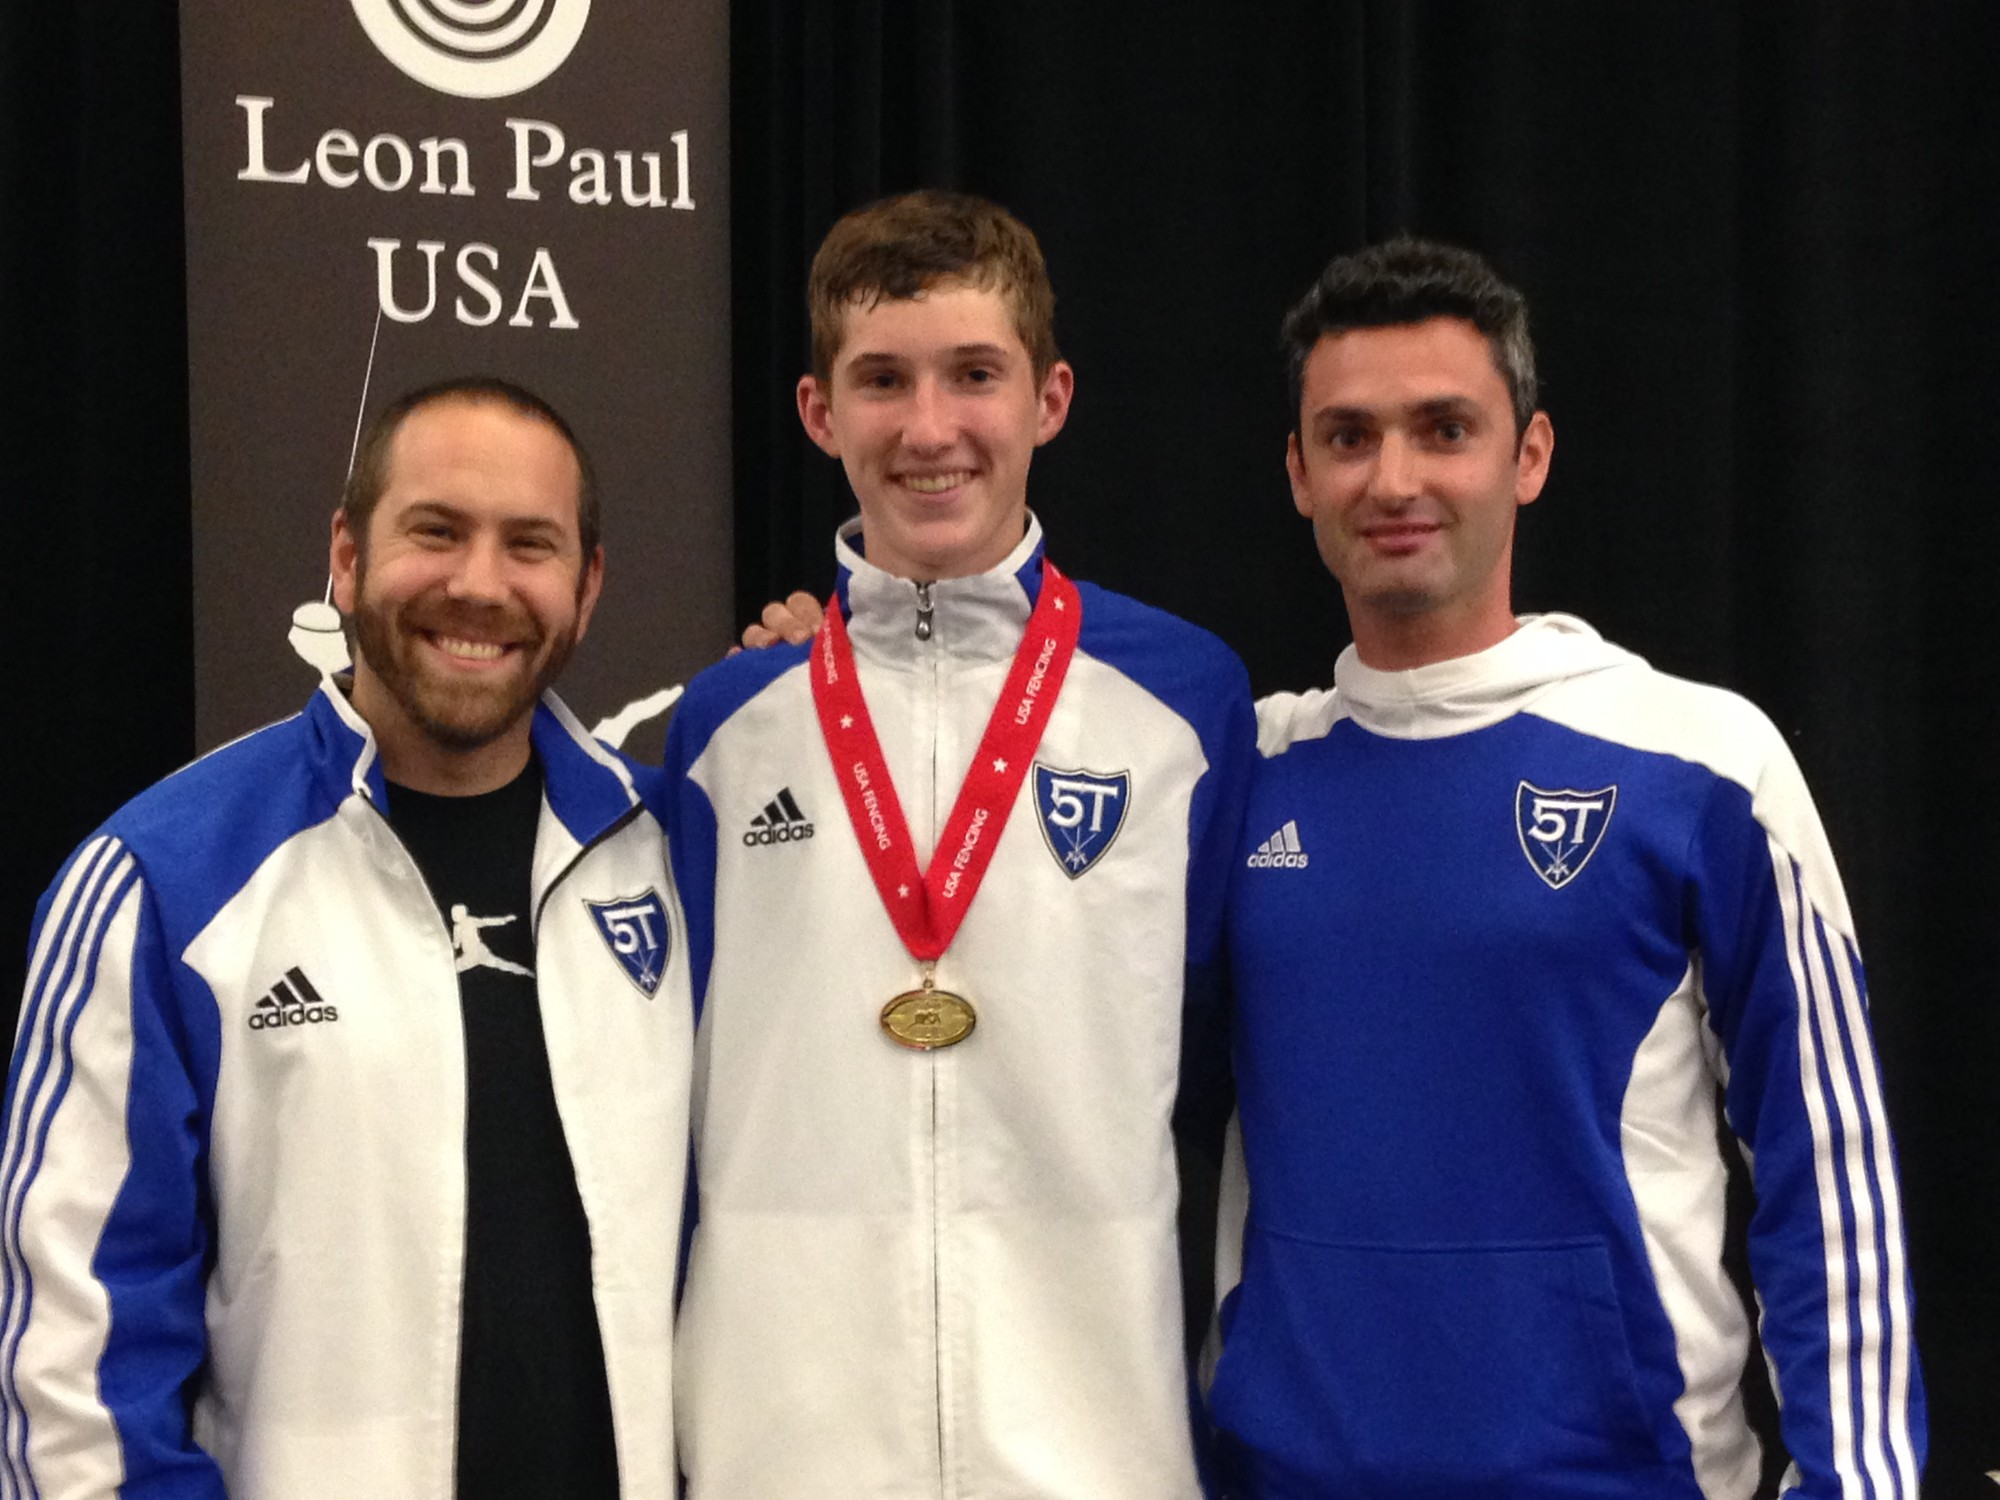 Andrew Machovec, center, with coaches Jonathan Tiomkin, left, and Gidon Retzkin after his gold-medal win at fencing's summer nationals in San Jose, Calif., in June. Retzkin, his personal coach, received a coaching medal for Andrew's win.